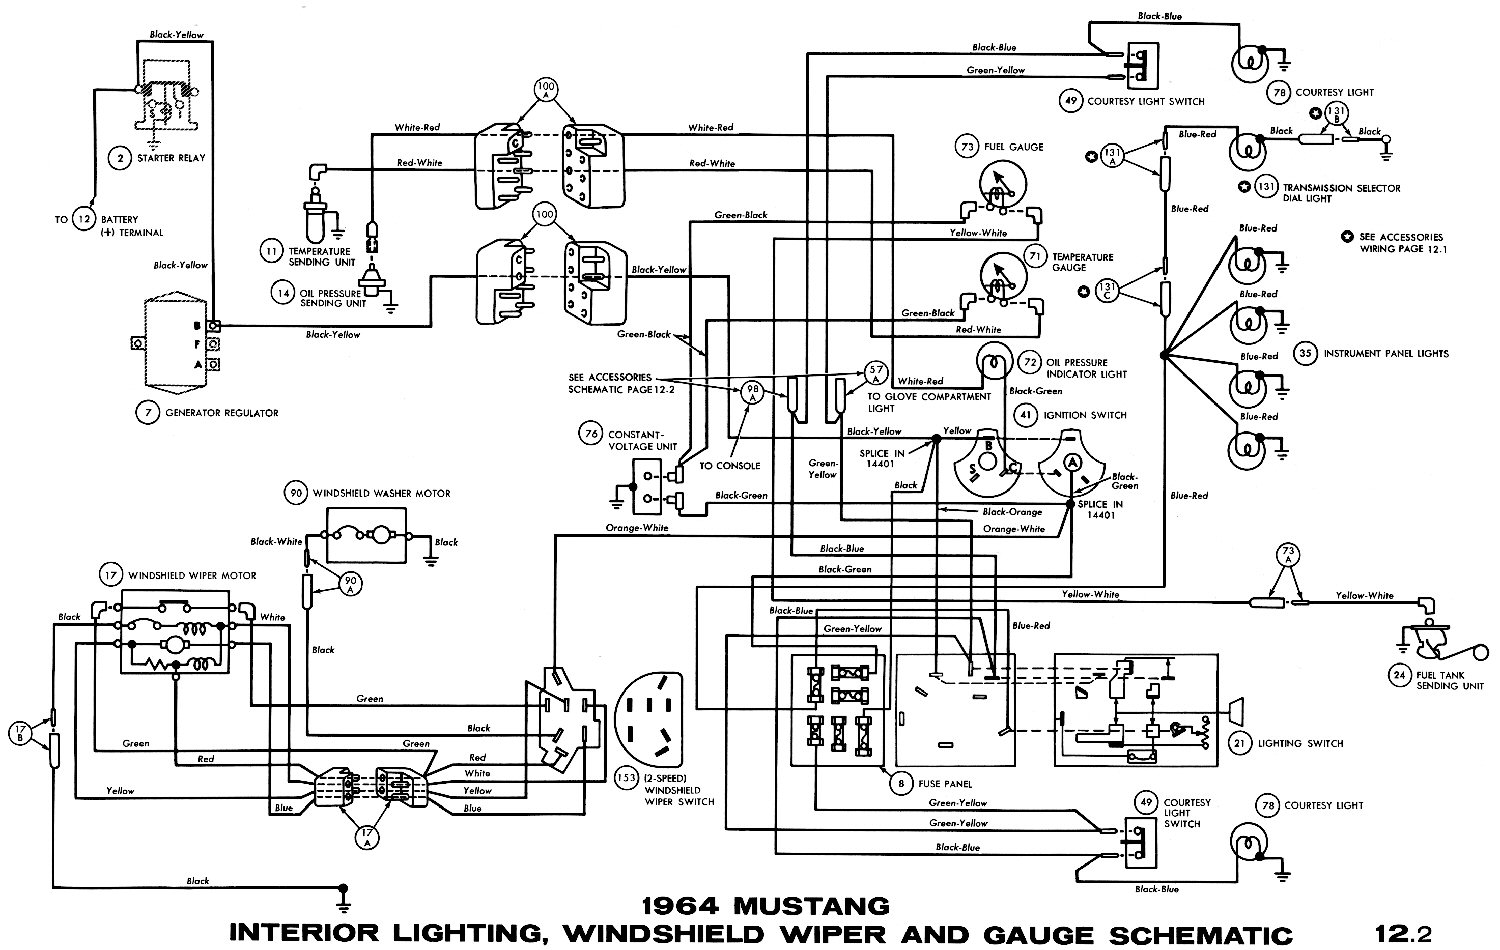 1964k 1966 mustang wiring diagram 1967 mustang wiring schematic \u2022 wiring 1966 mustang wiring harness kit at n-0.co